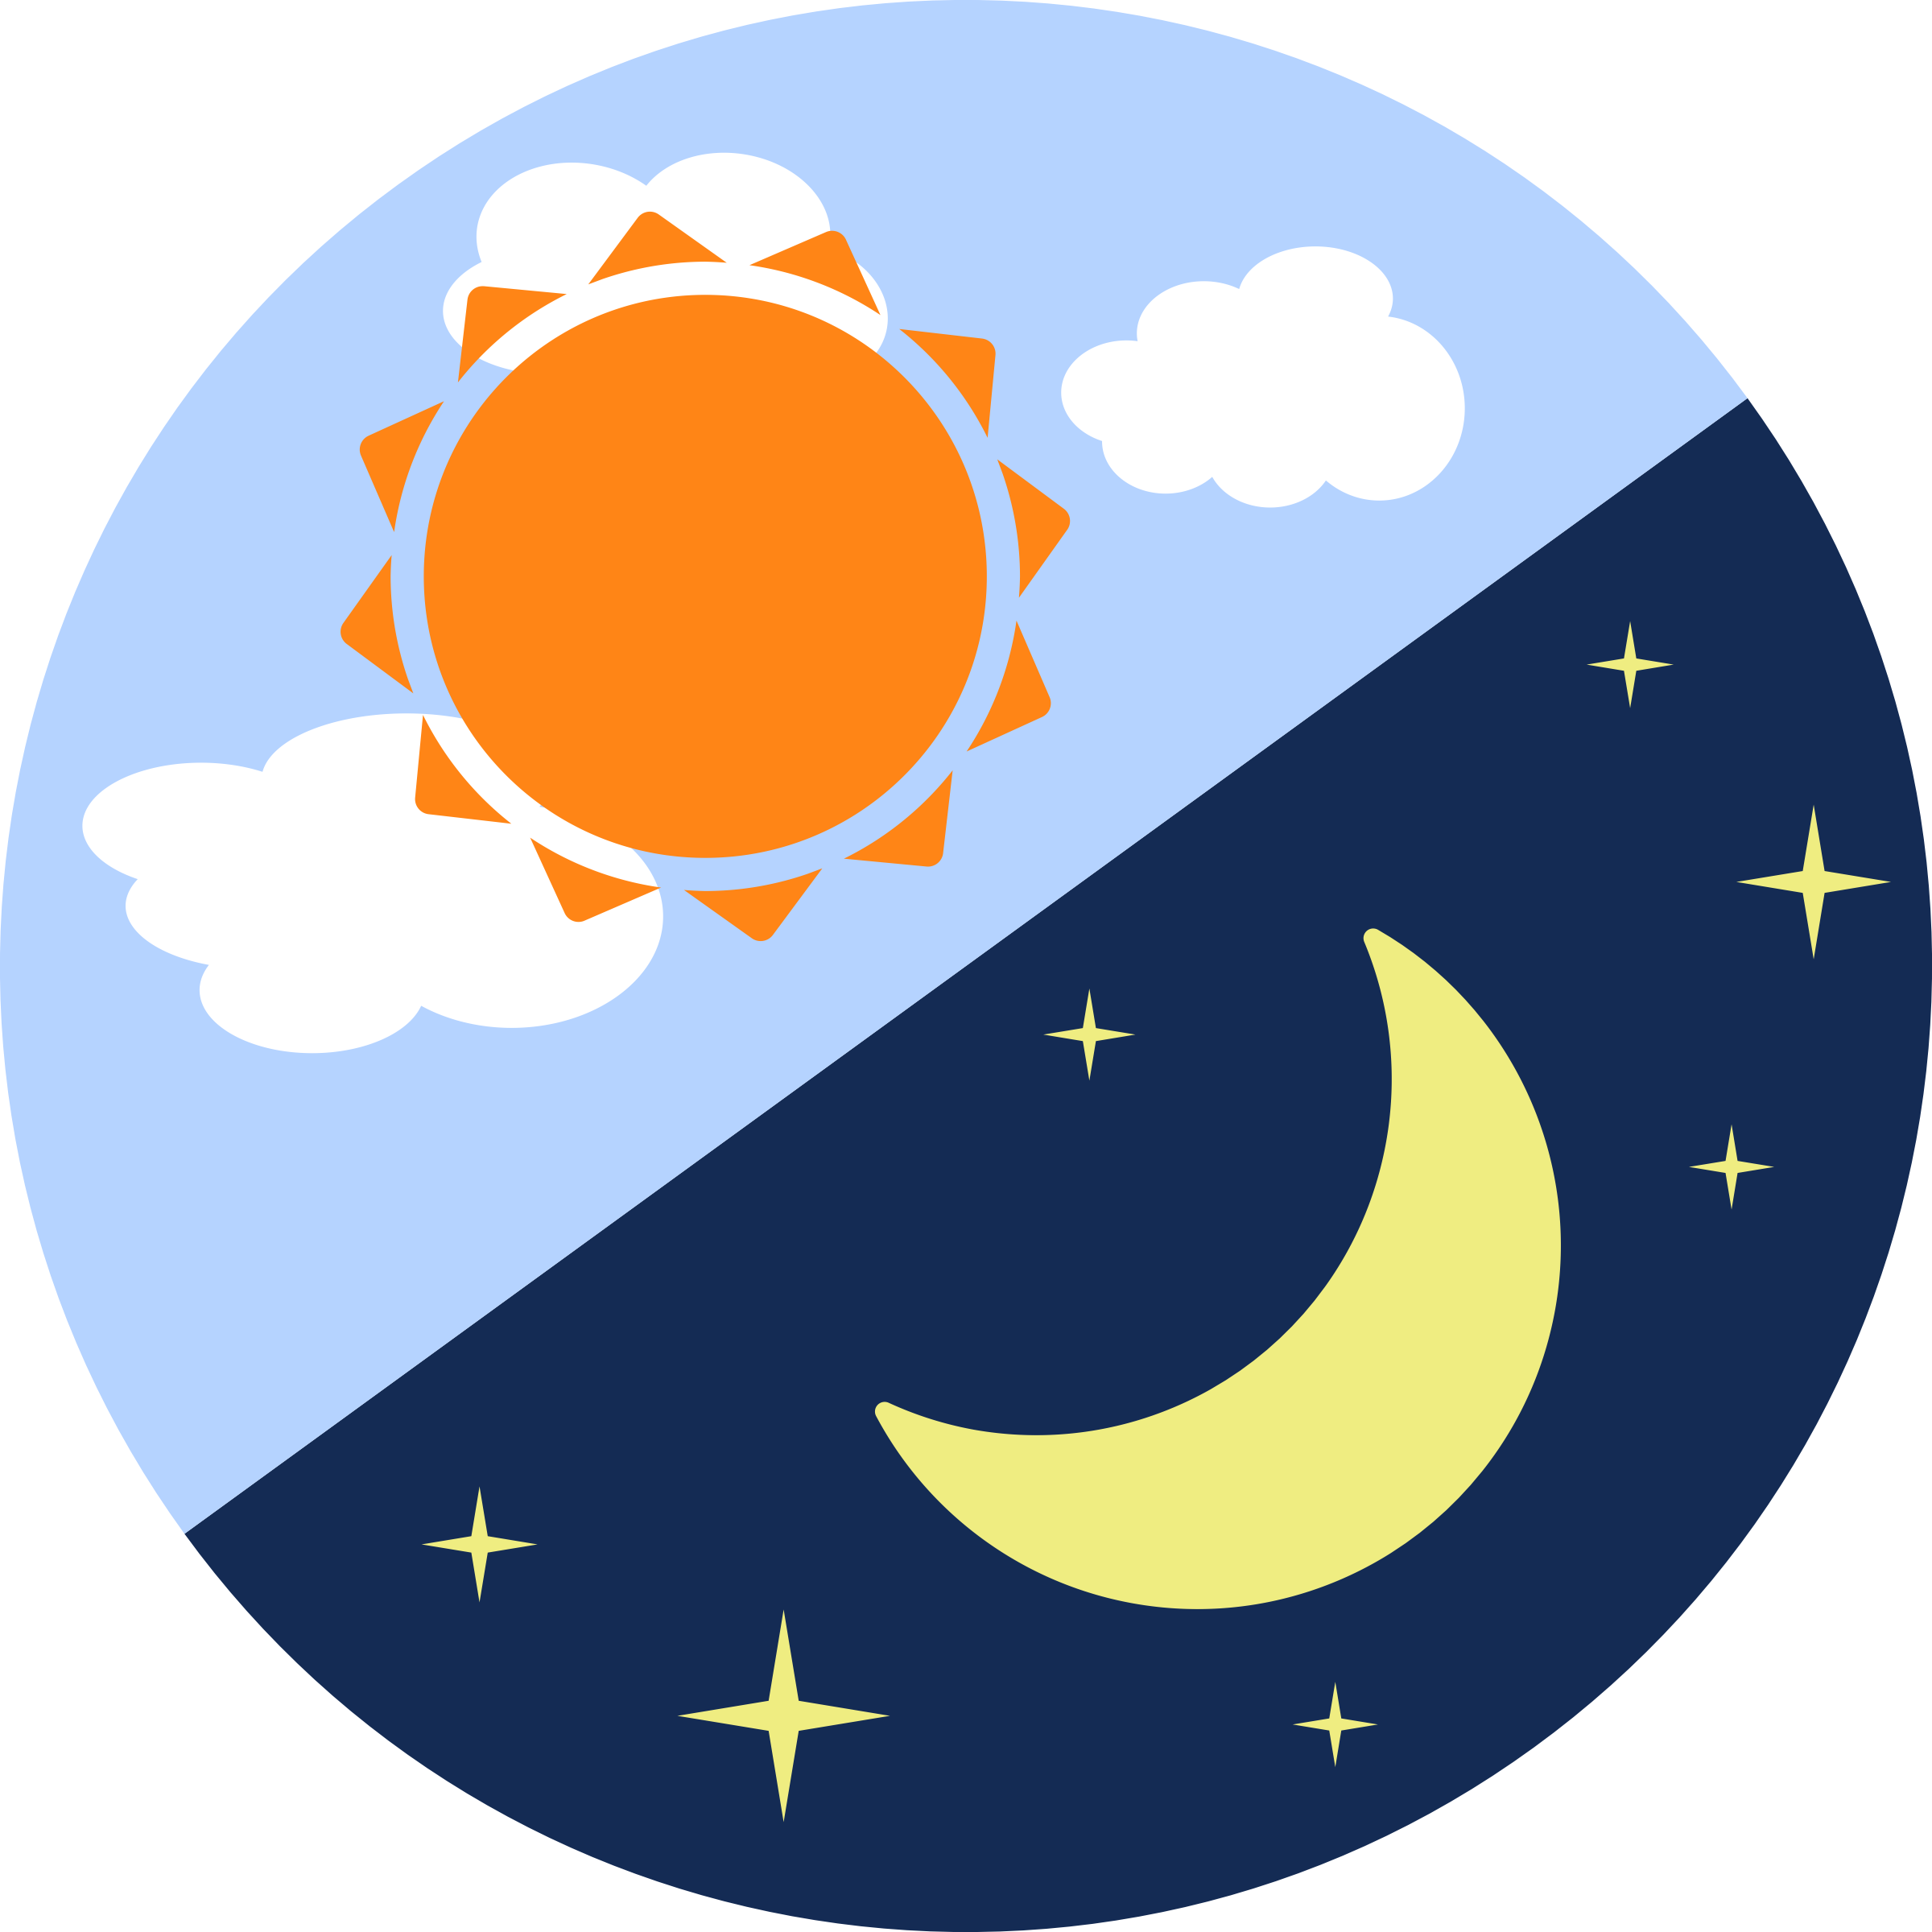 Day and night clipart animated image free Day And Night PNG Transparent Day And Night.PNG Images.   PlusPNG image free